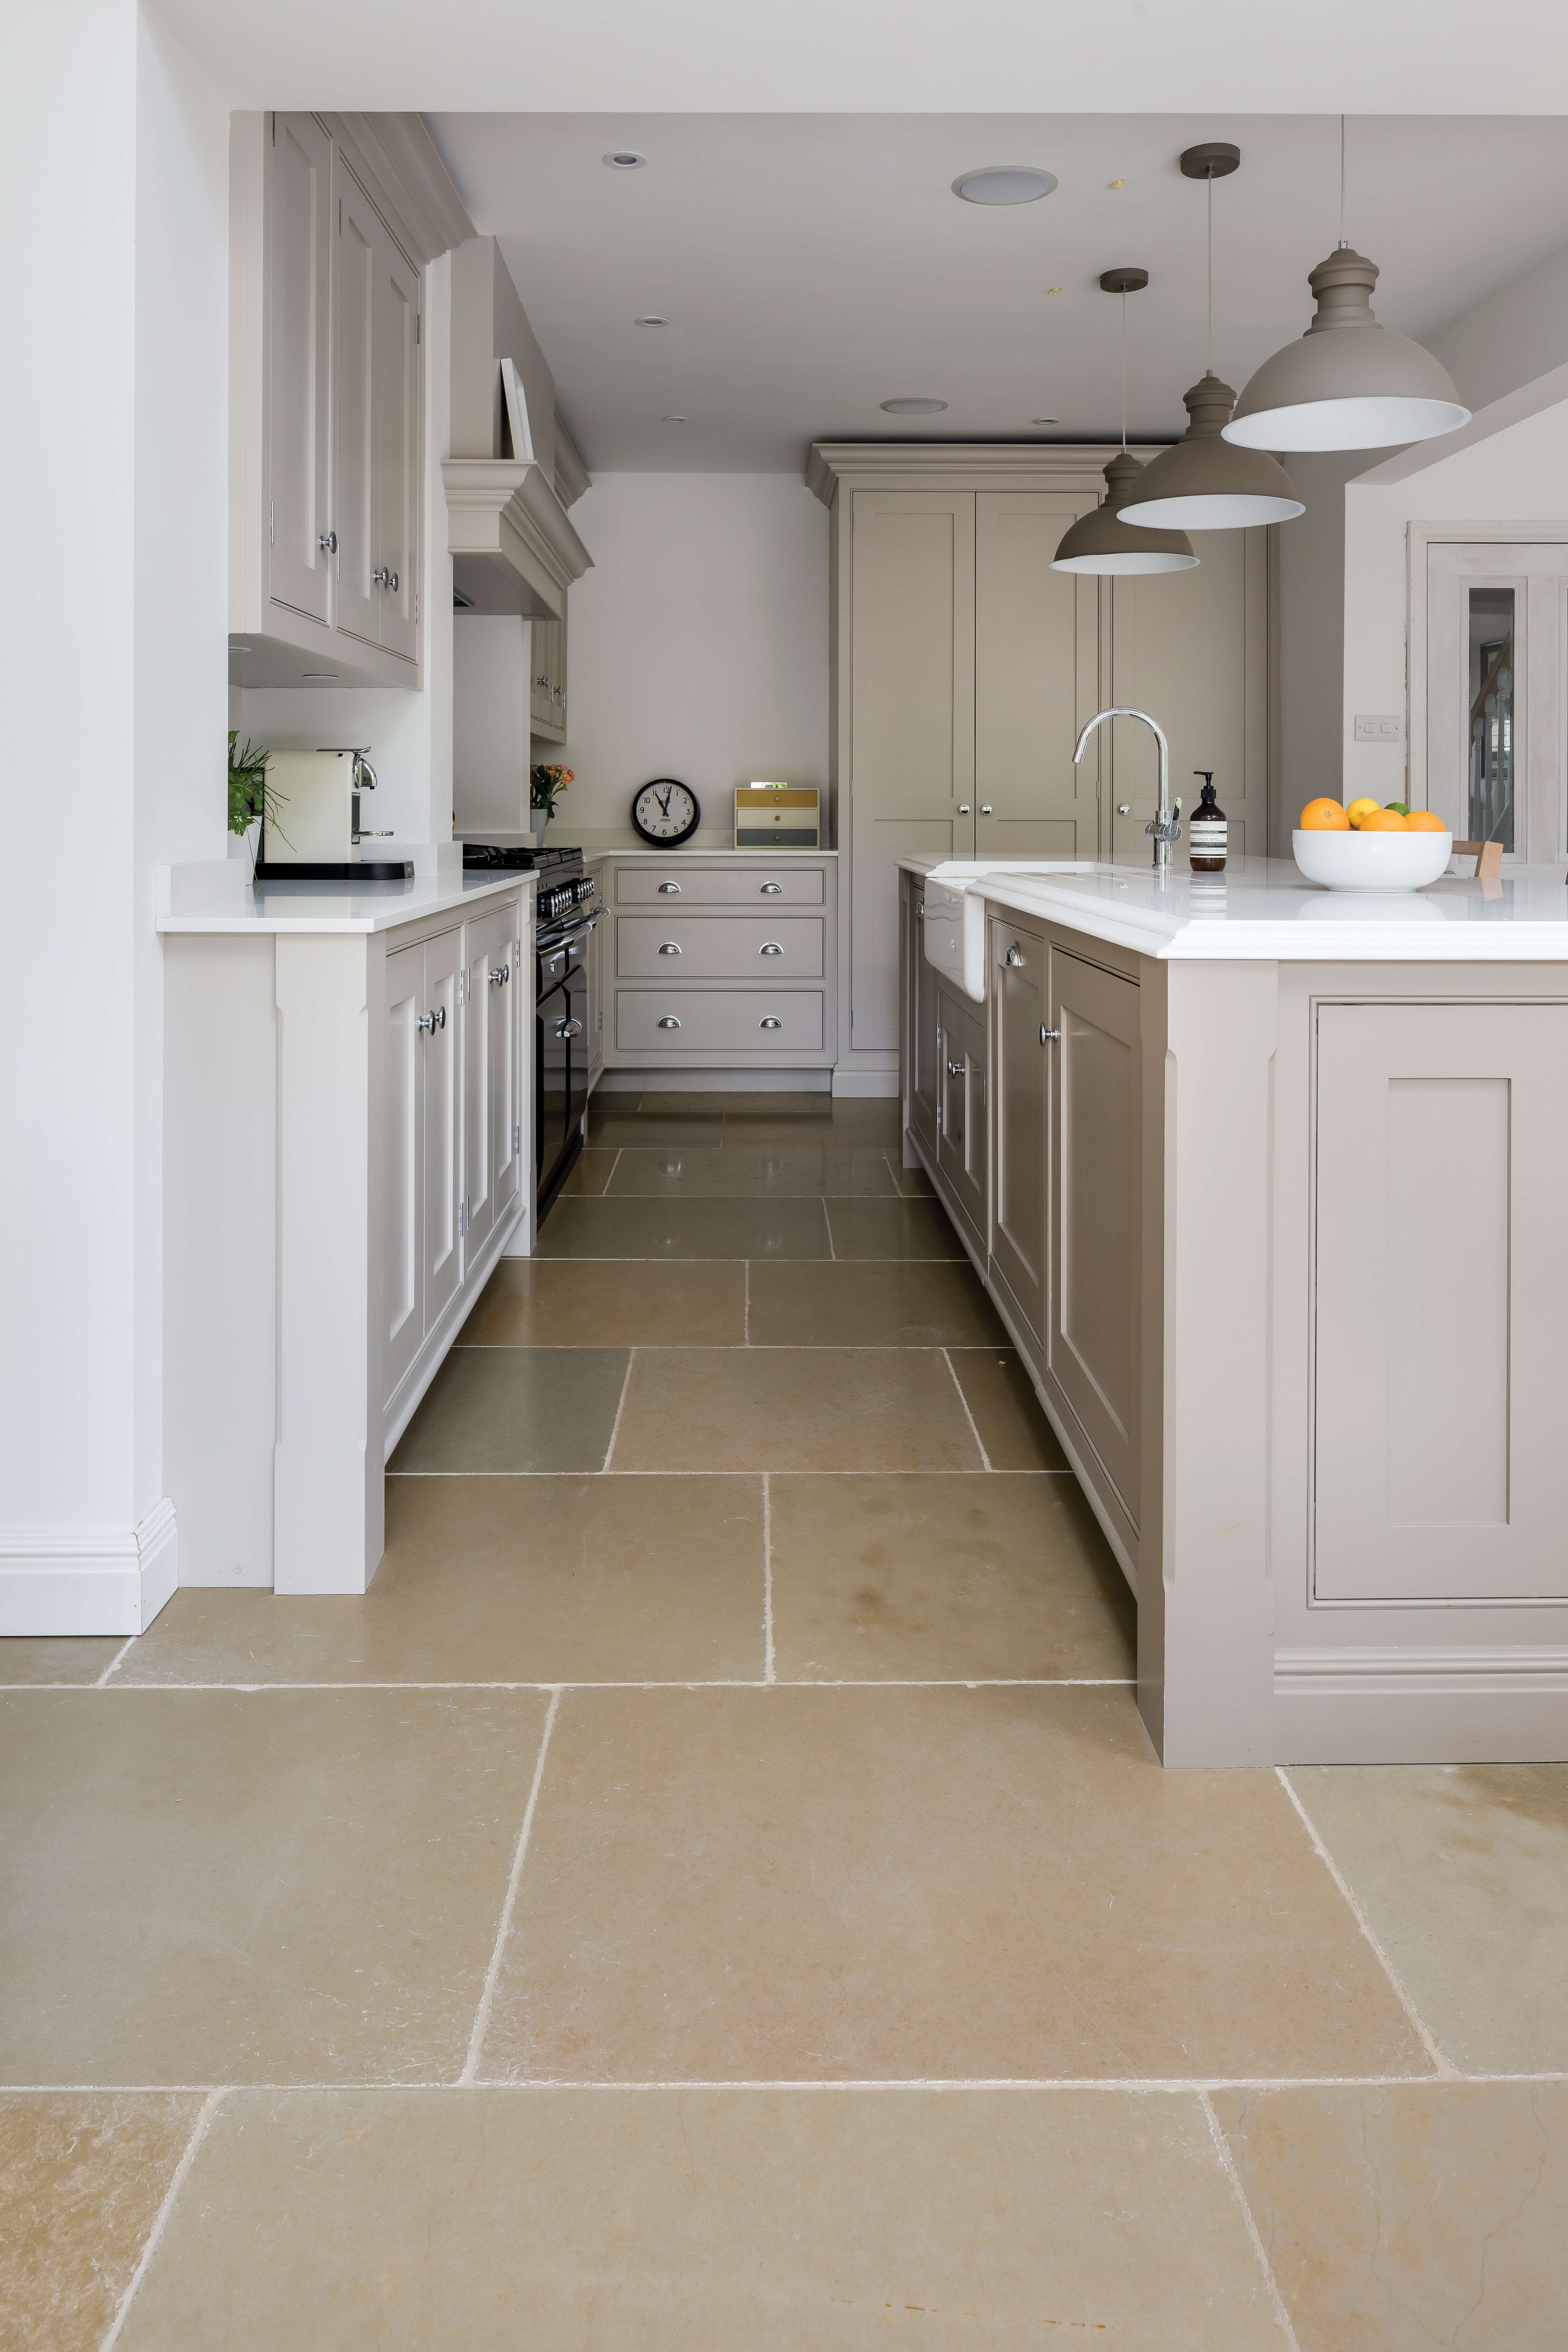 Umbria floor tiles image collections tile flooring design ideas umbria floor tiles images home flooring design 100 umbria floor tiles gallery tile flooring design ideas dailygadgetfo Choice Image